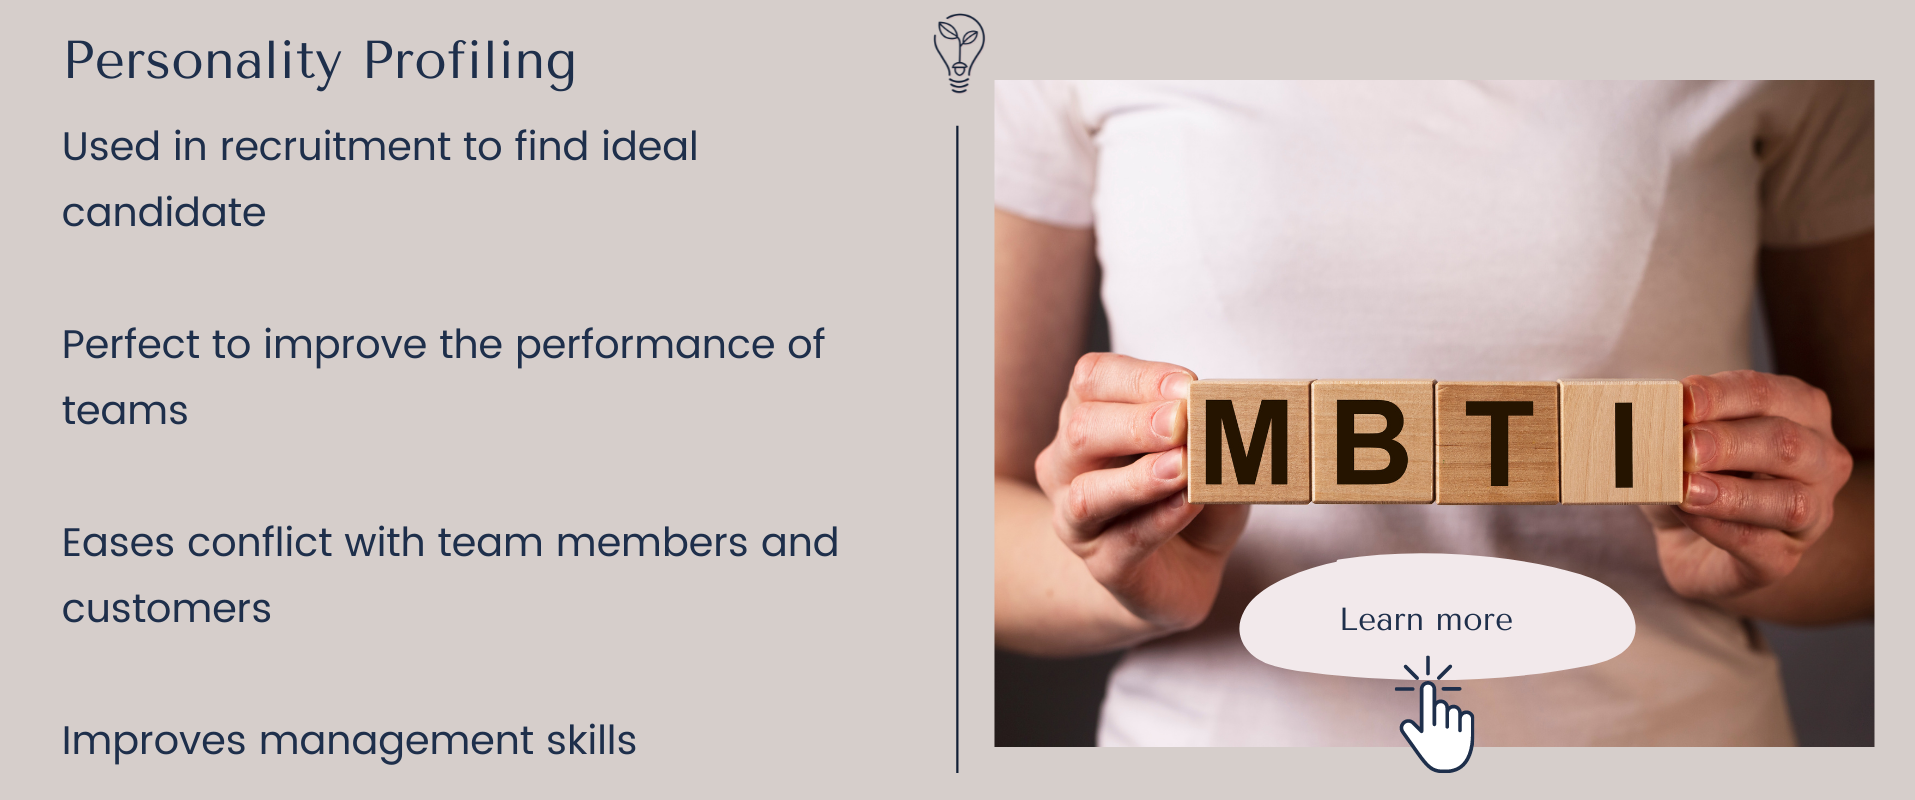 Personality profiling with myers briggs Used in recruitment to find ideal candidate Perfect to improve the performance of teams Eases conflict with team members and customers Improves management skills Northamptonshire, Buckinghamshire, London, Warwickshire, Leicestershire, Oxfordshire